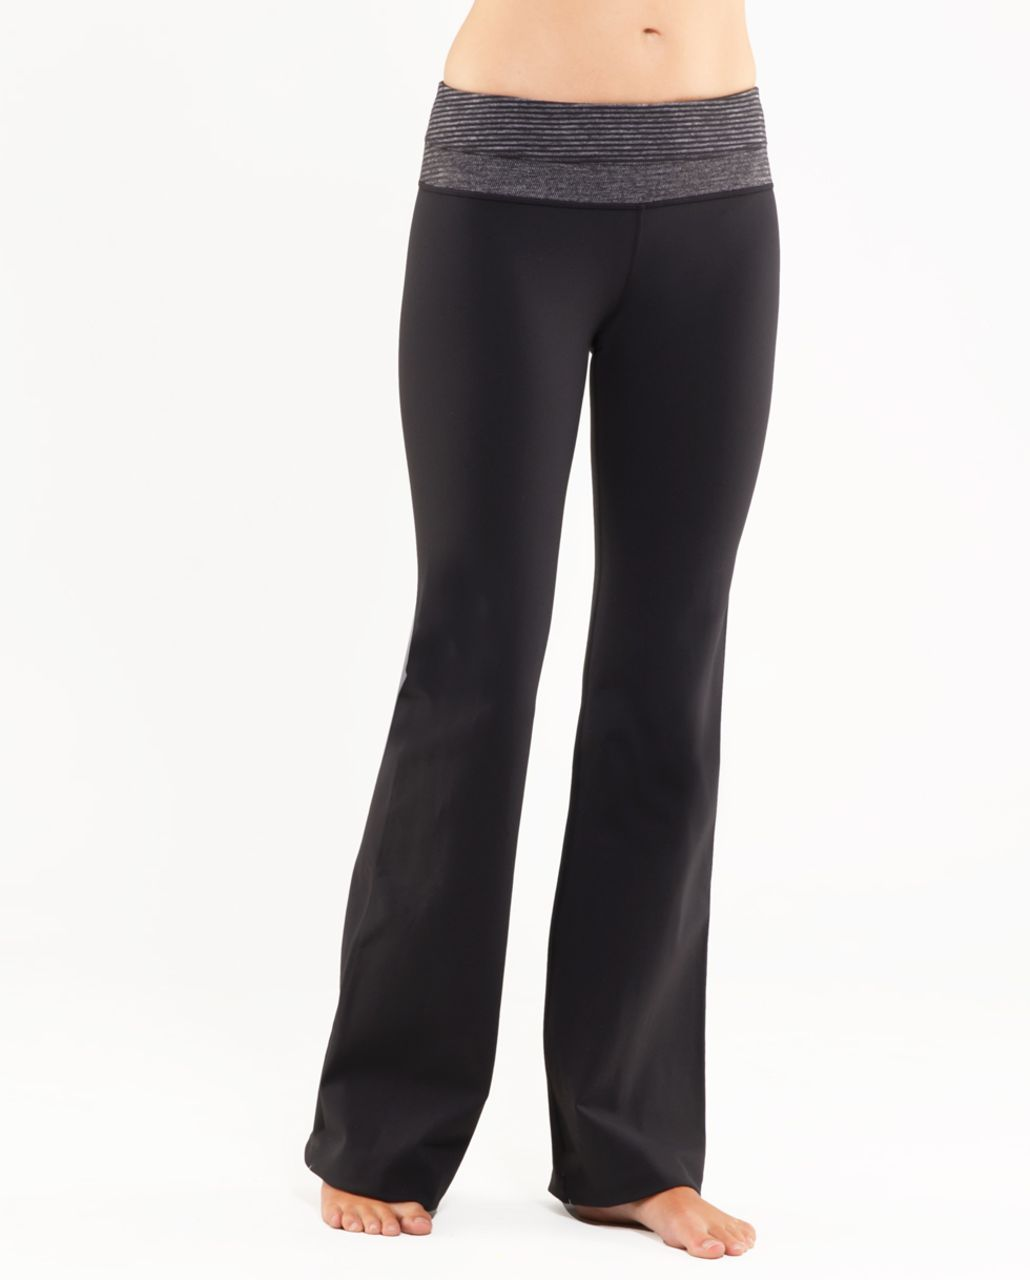 Lululemon Groove Pant (Tall) - Black /  Black Heathered Coal Mini Check